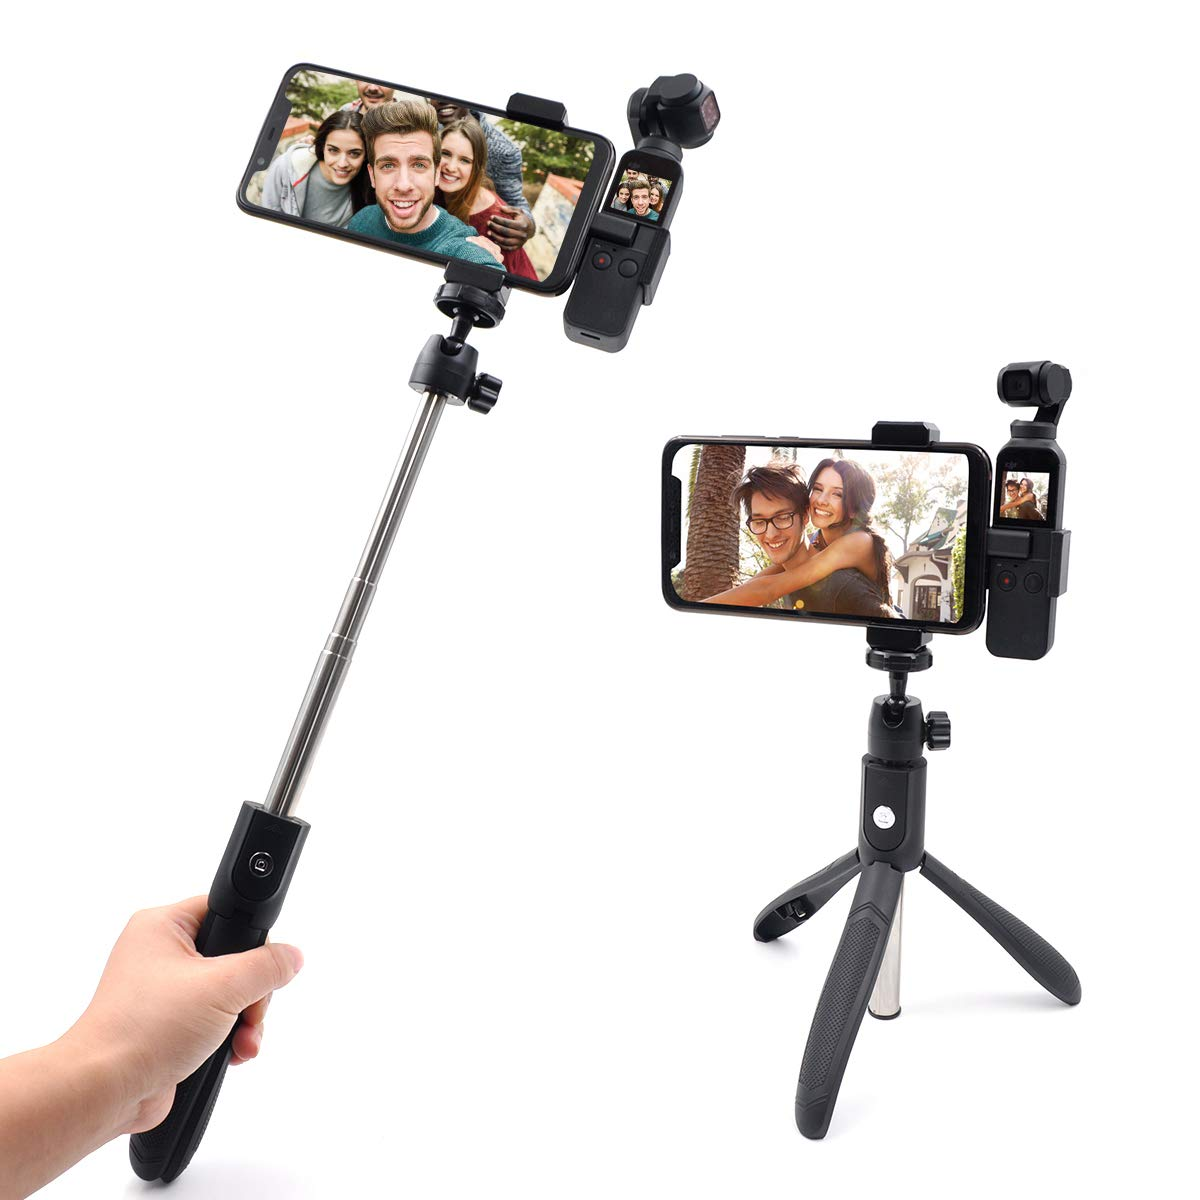 OSMO Pocket Selfie Stick Bluetooth Multifunctional Extendable Tripod with Wireless Remote Selfie Stick for DJI OSMO Pocket as shown